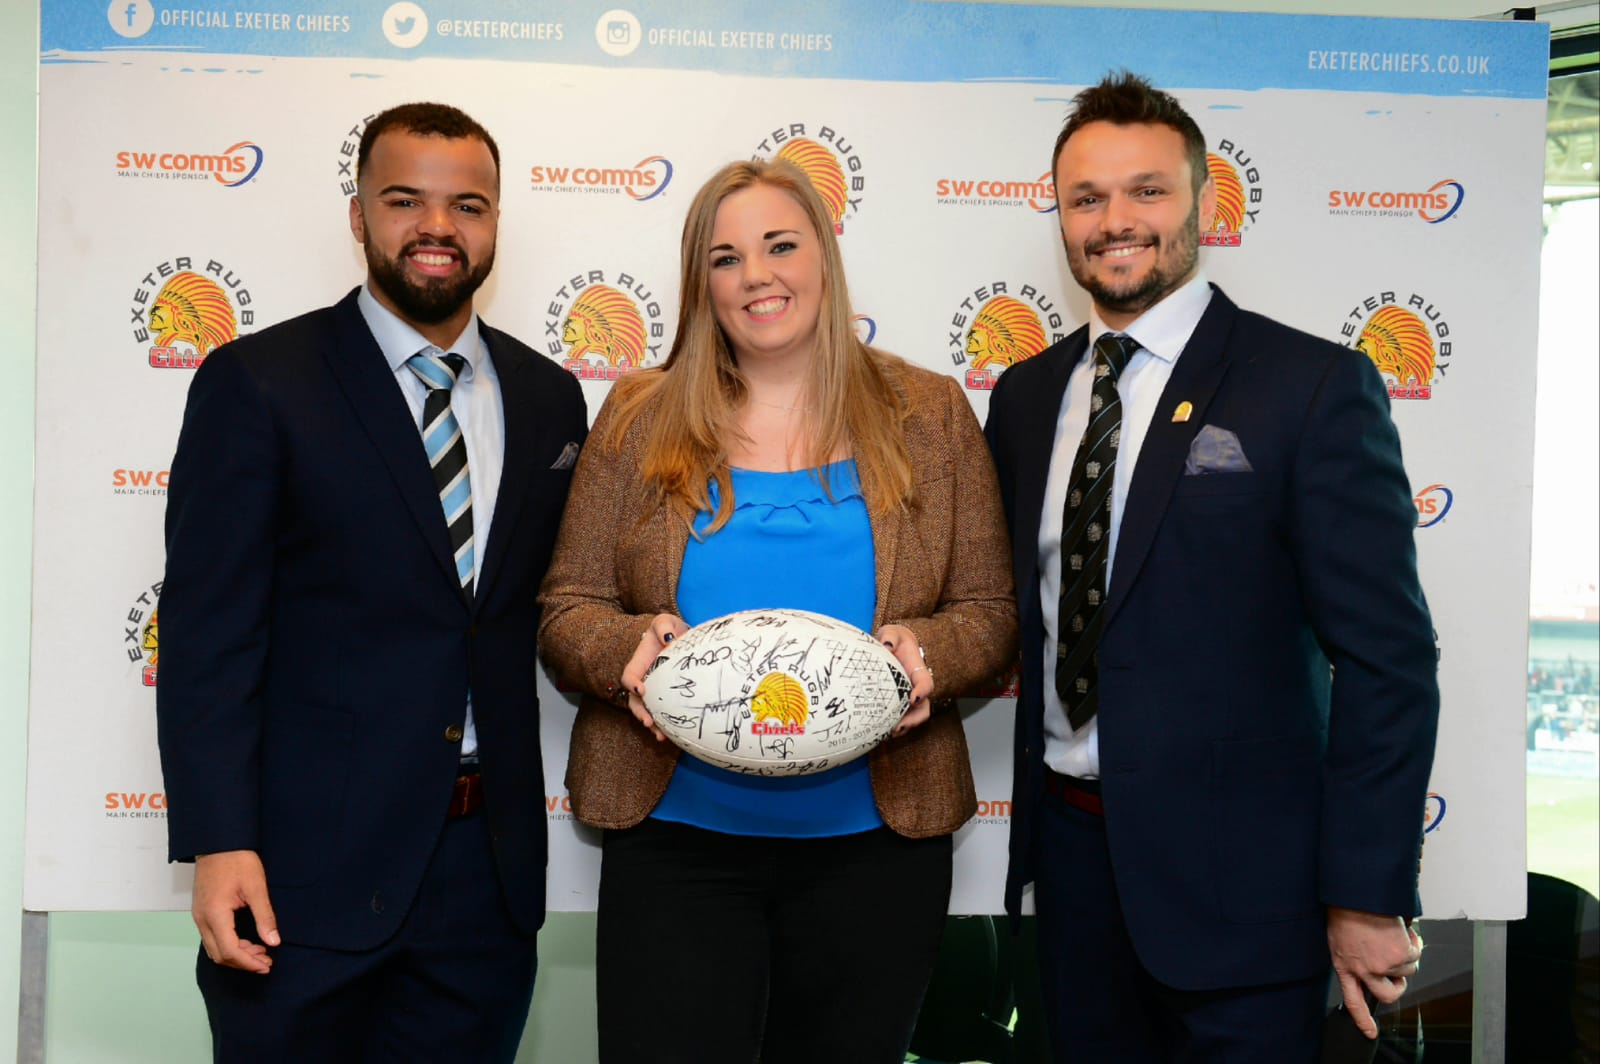 Evans Transport Exeter Chiefs Match Ball